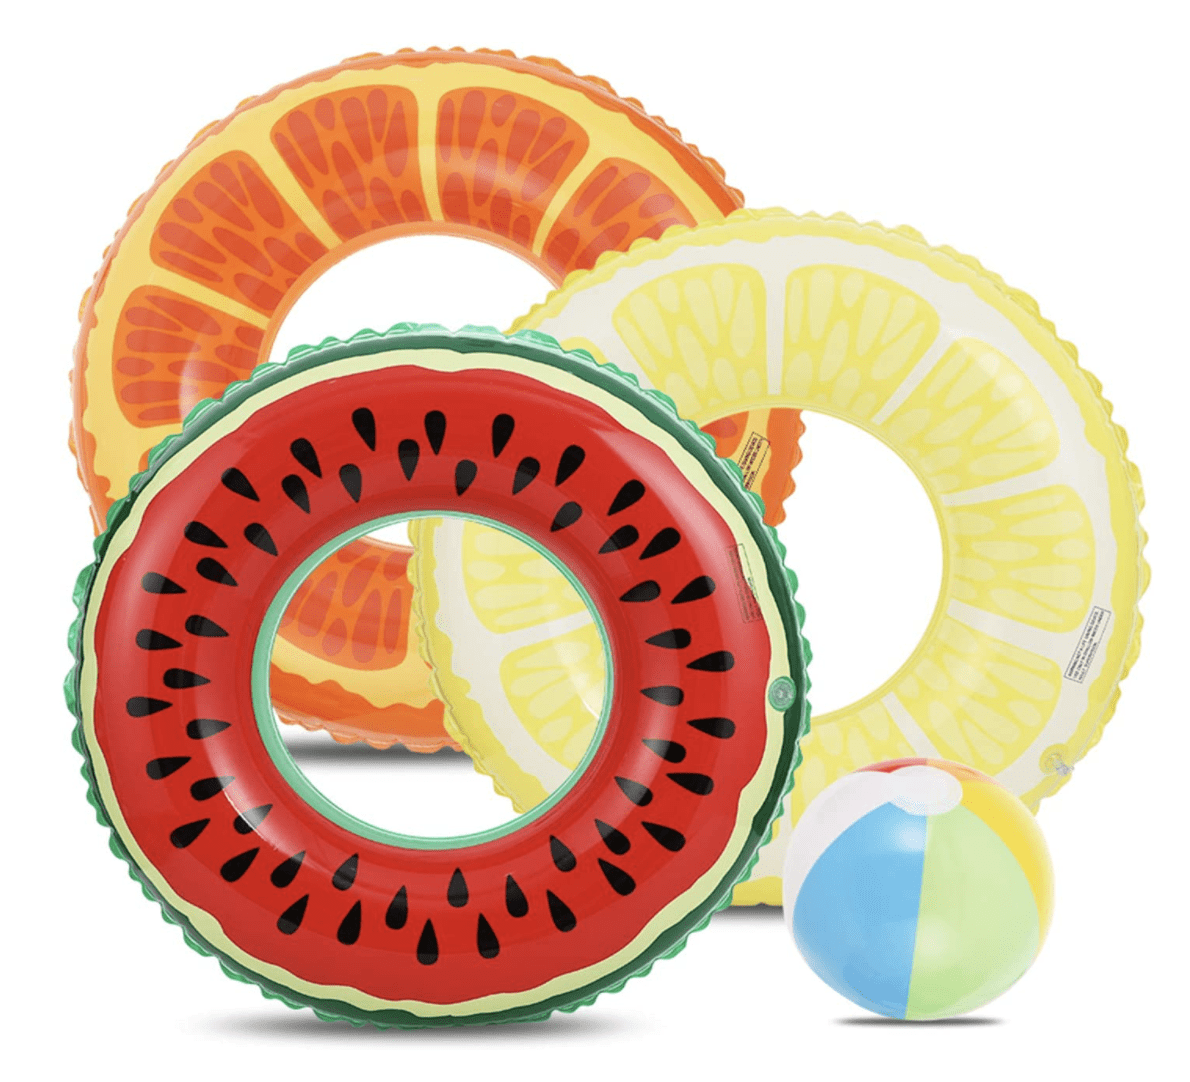 Amazon Prime Day Summer Deals - Fruit Pool Floats